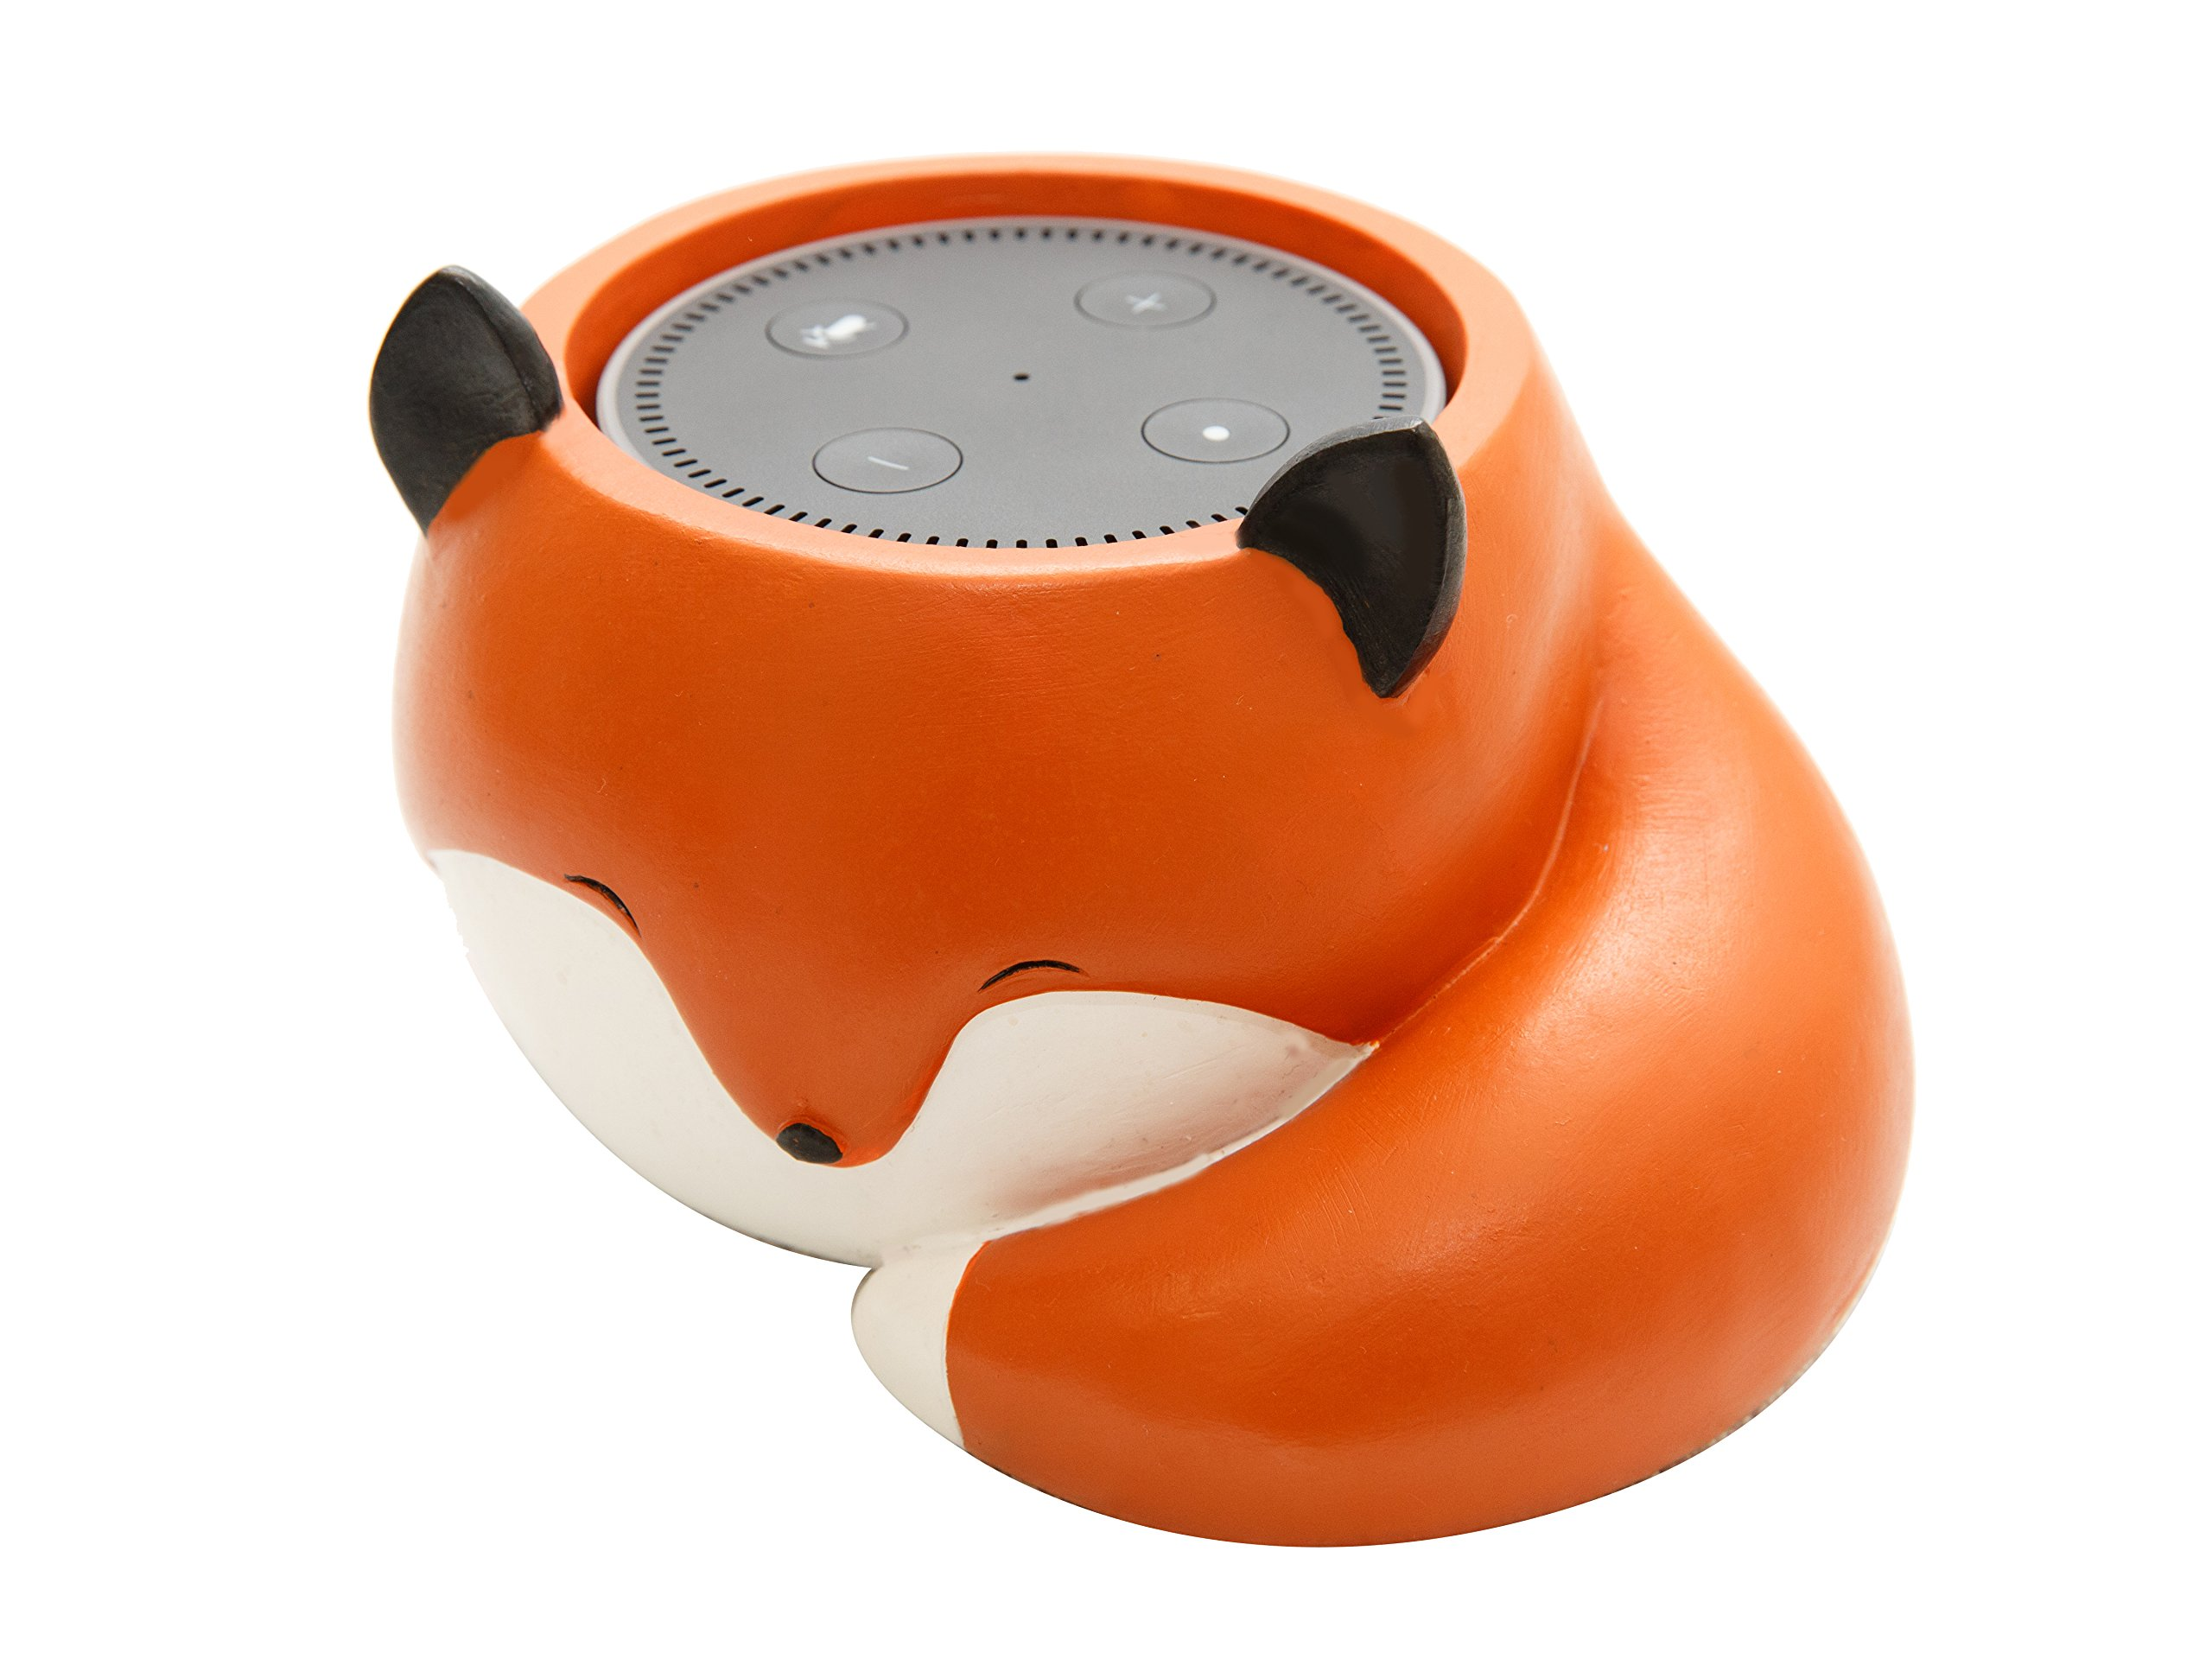 Cute Fox Holder Stand Mount For Alexa Echo Dot, Bose, Anker, Home Mini round speakers Accessories